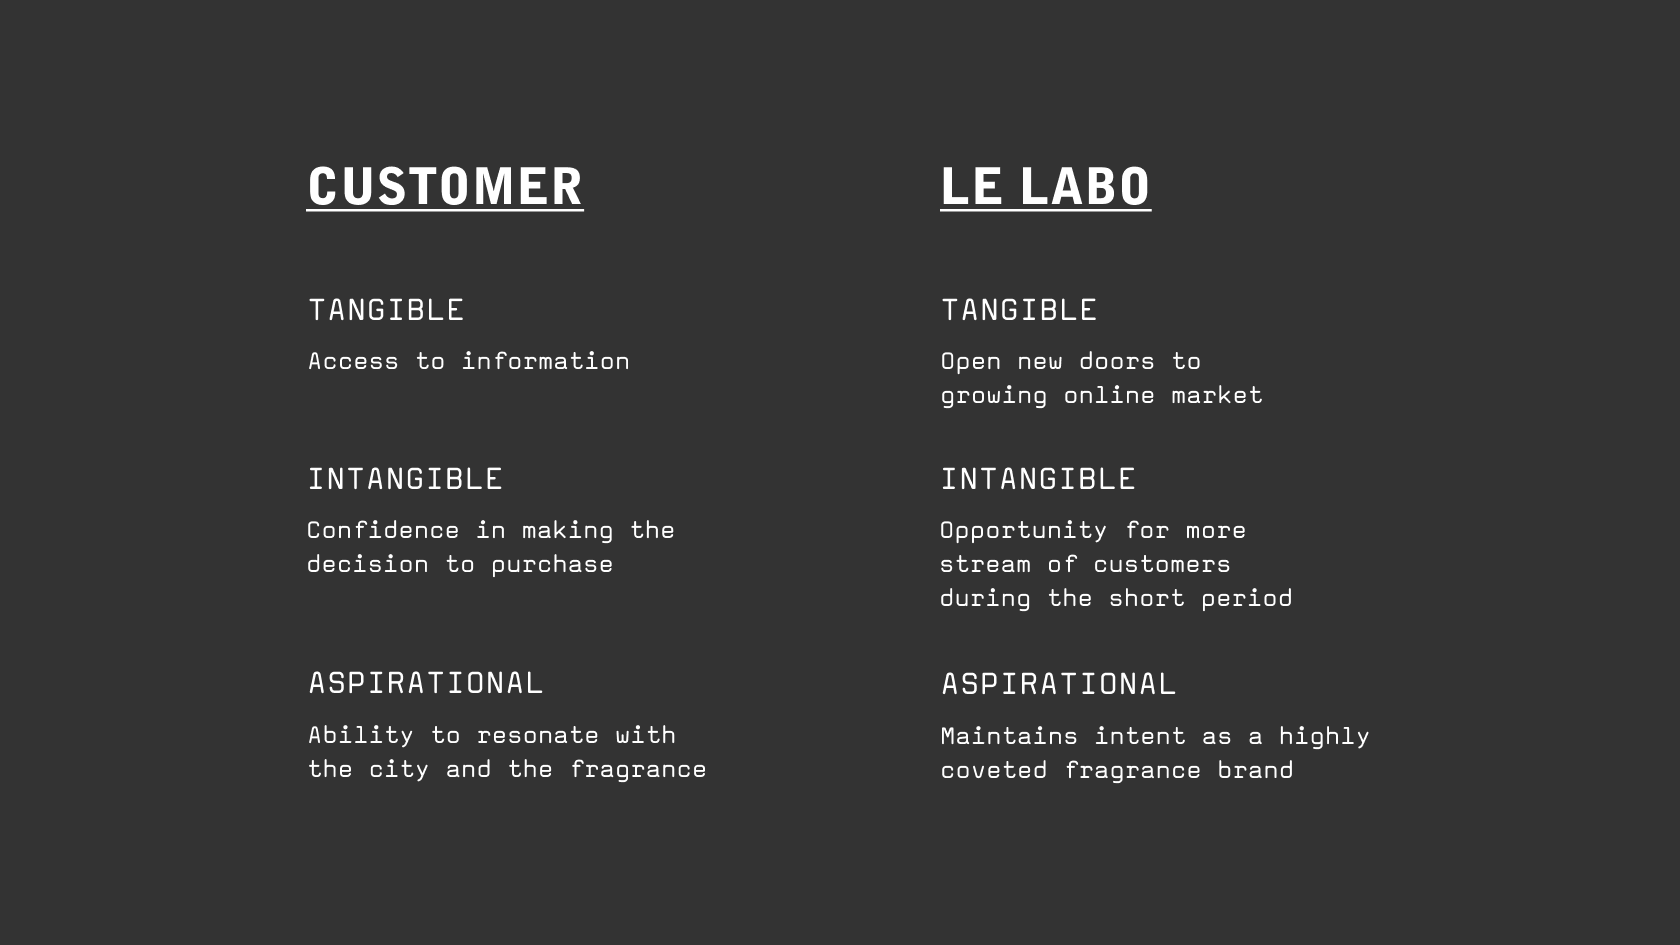 Le Labo value prop